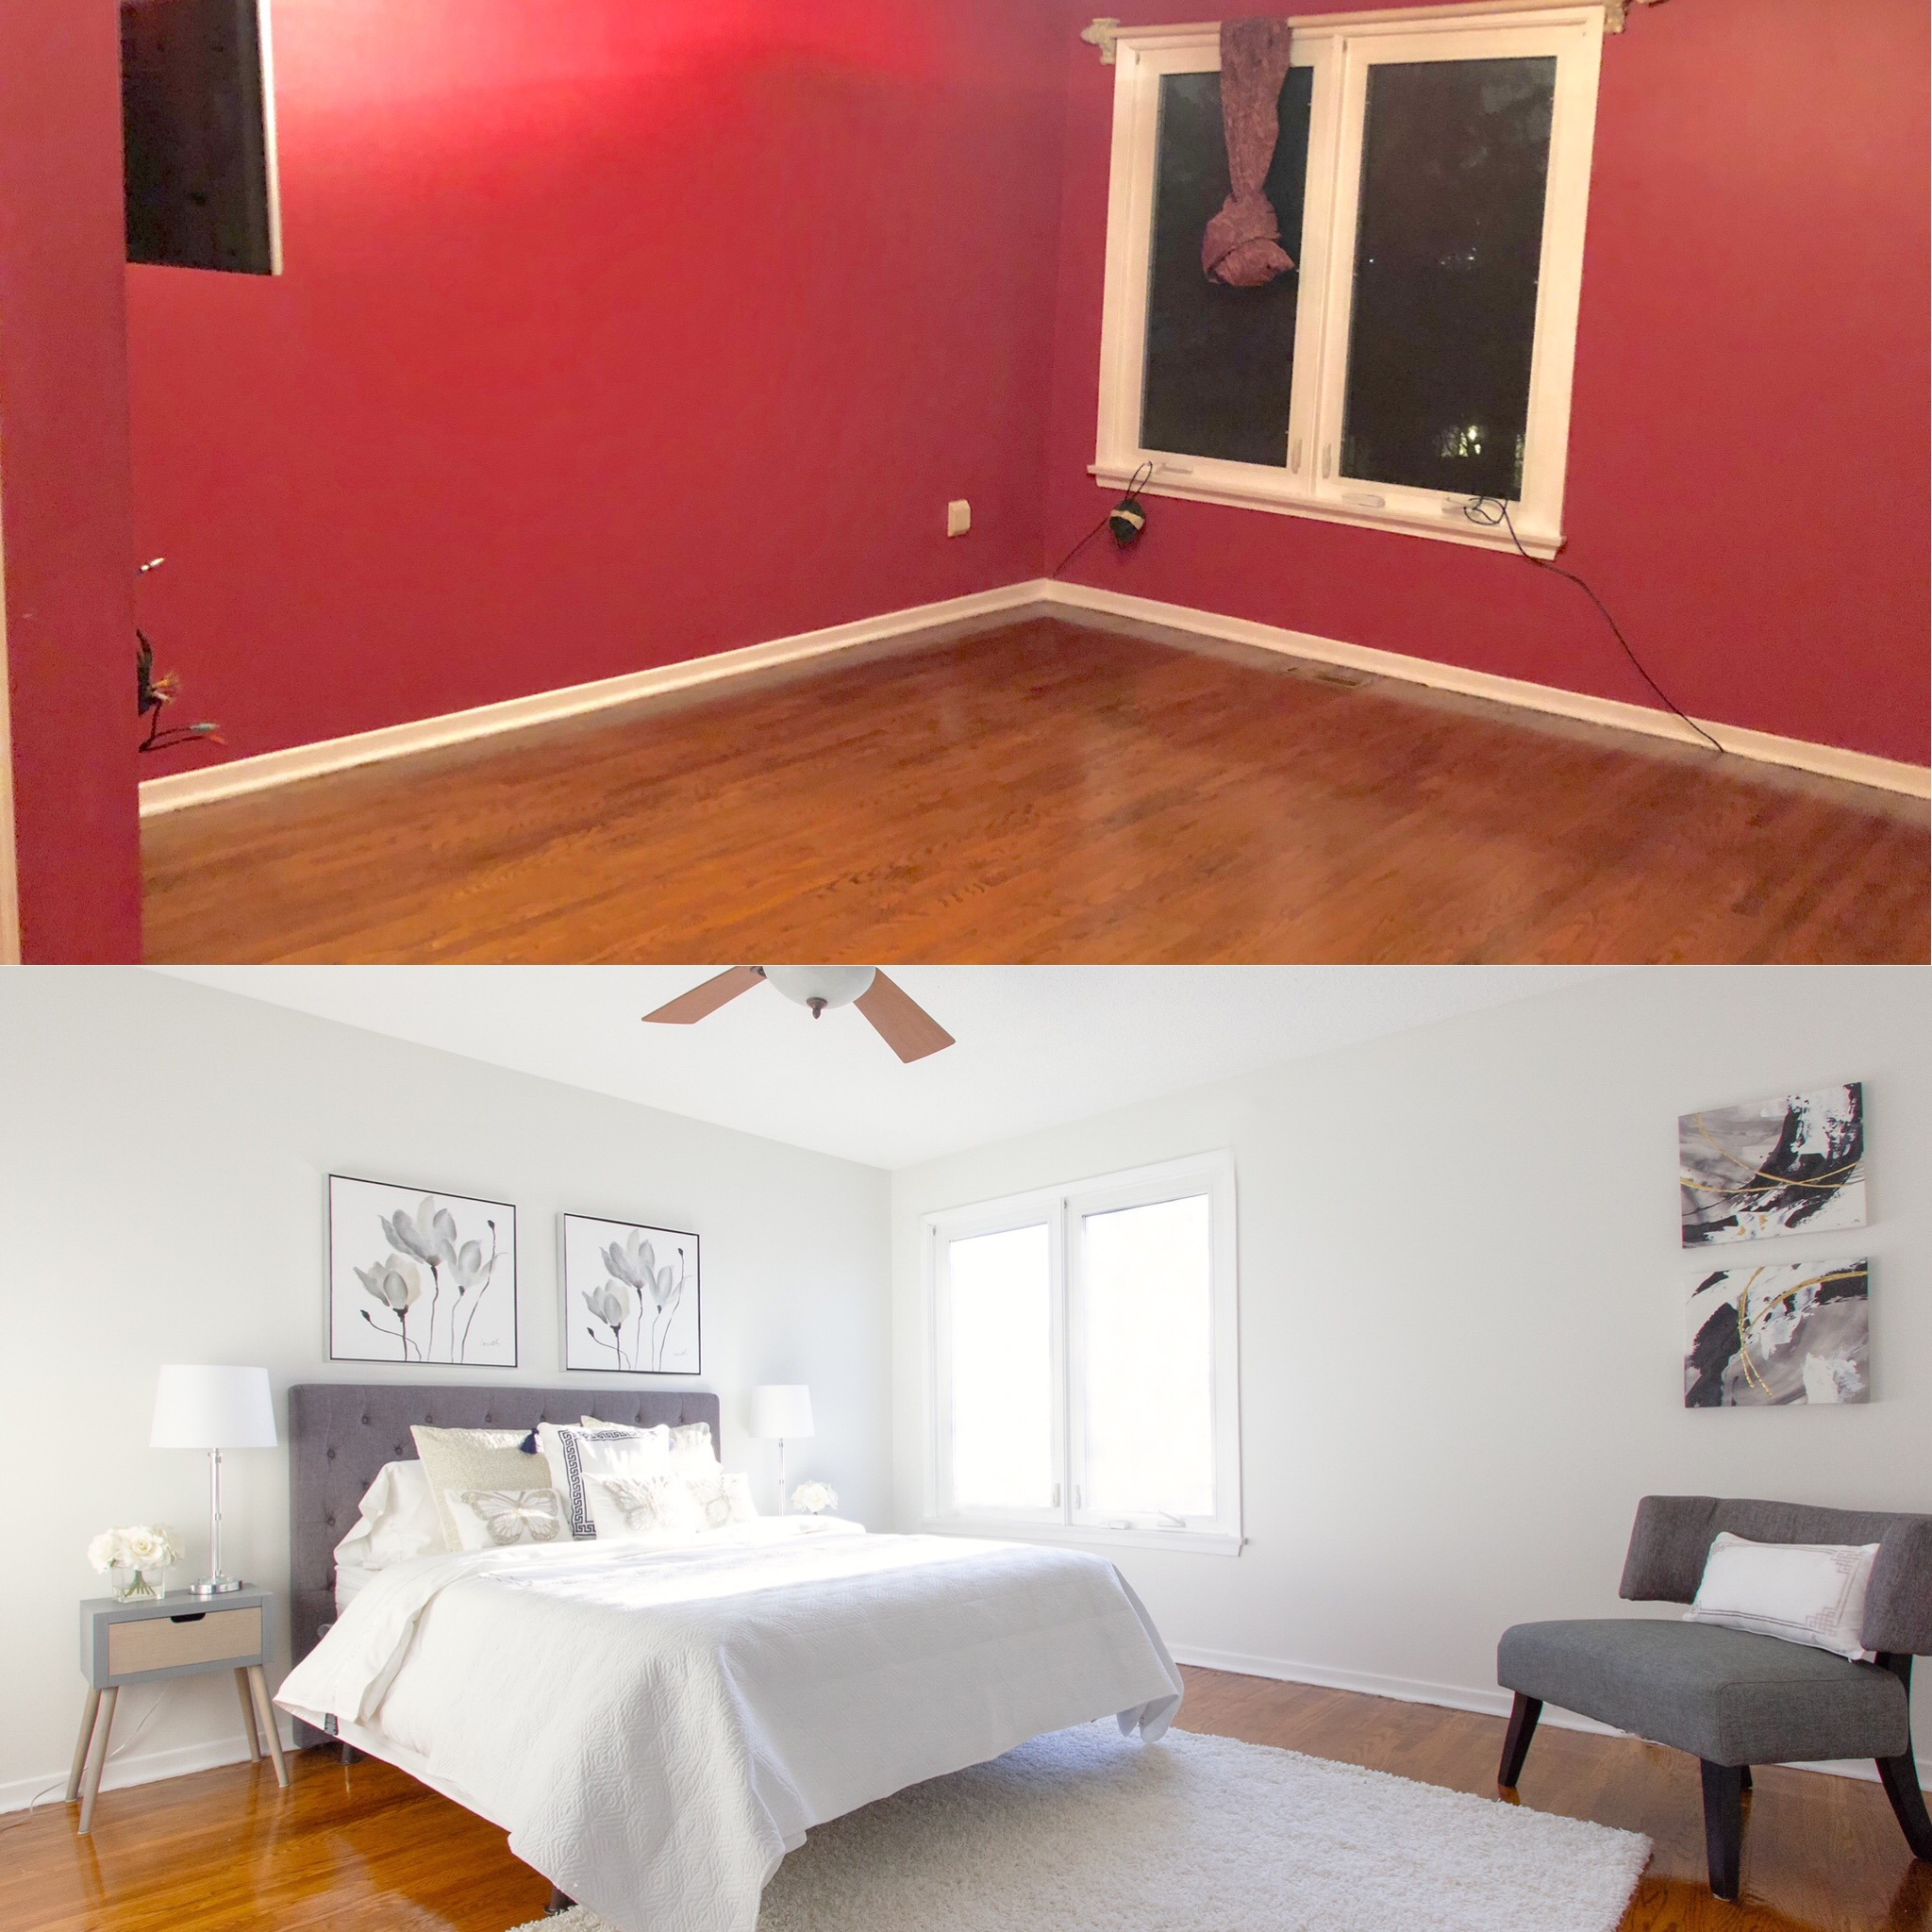 """Red is a powerful colour. Painting entire walls red is an either """"love it/hate it"""" reaction. It's risky to leave a bold colour on the wall when selling your home. I've said it a million times, paint is the best ROI (return on investment) when selling! The freshly staged master bedroom now looks tranquil and stylish. Also, showing how much space is essential in the master. How else are buyers to know if their beds will fit ? Don't leave it to their imaginations, it won't be good!"""